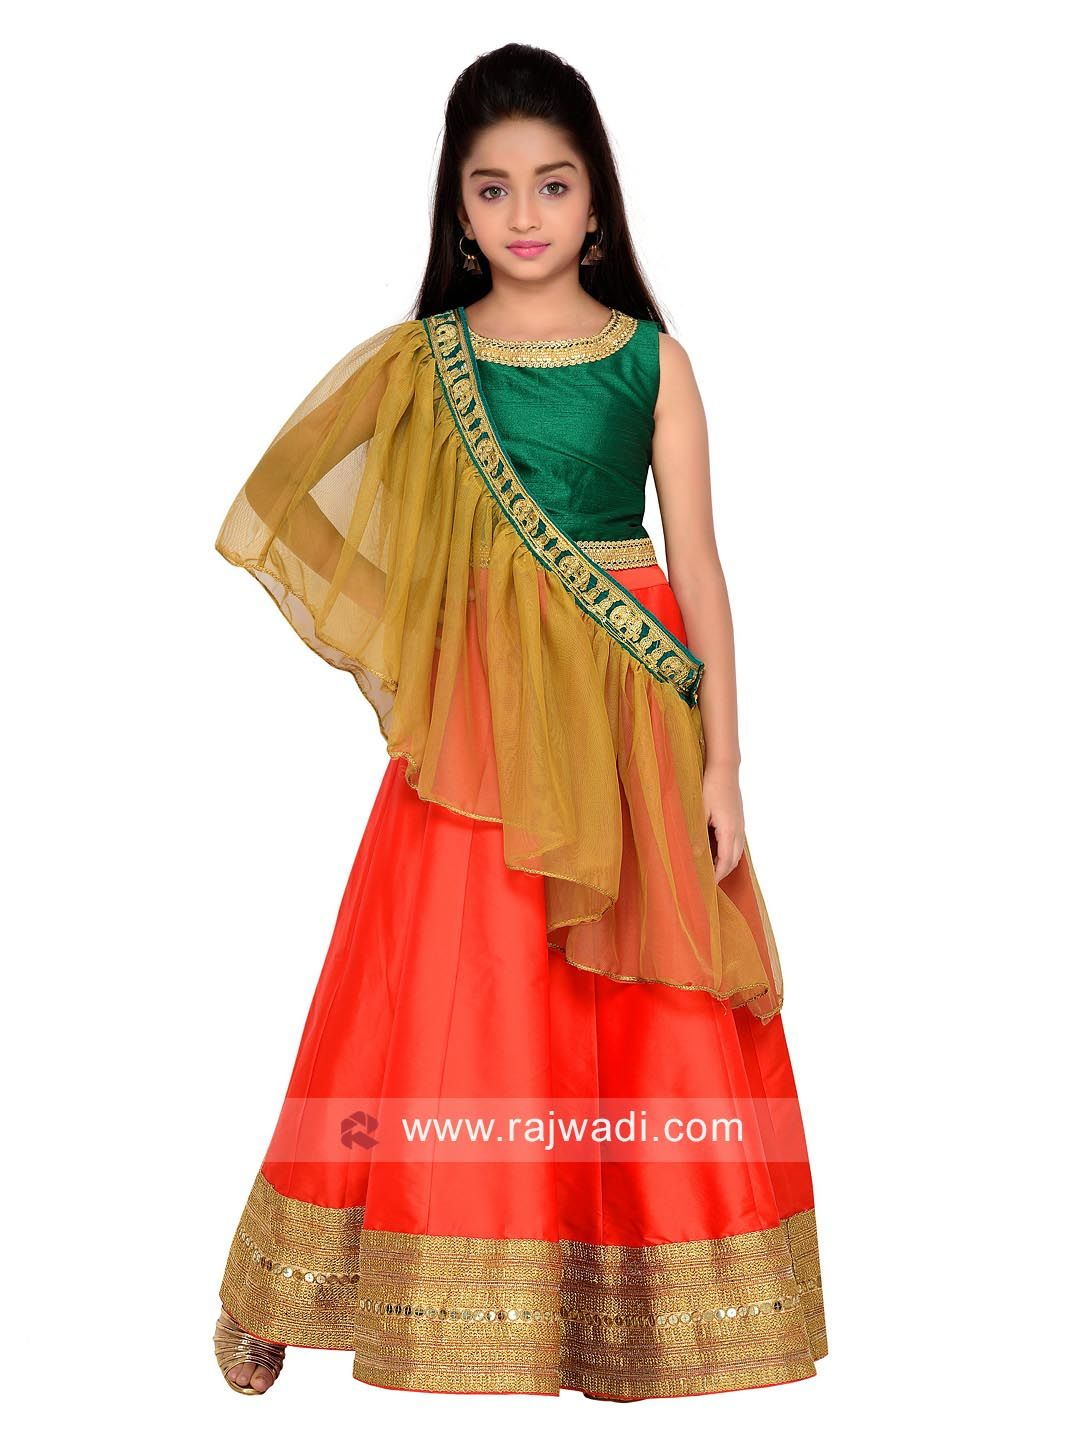 8df92de5e6a7d Kids Taffeta Lehenga Choli Set  rajwadi  kidswear  girls  ethnic   traditional  modern  trendy  fashionable  kidsfashion